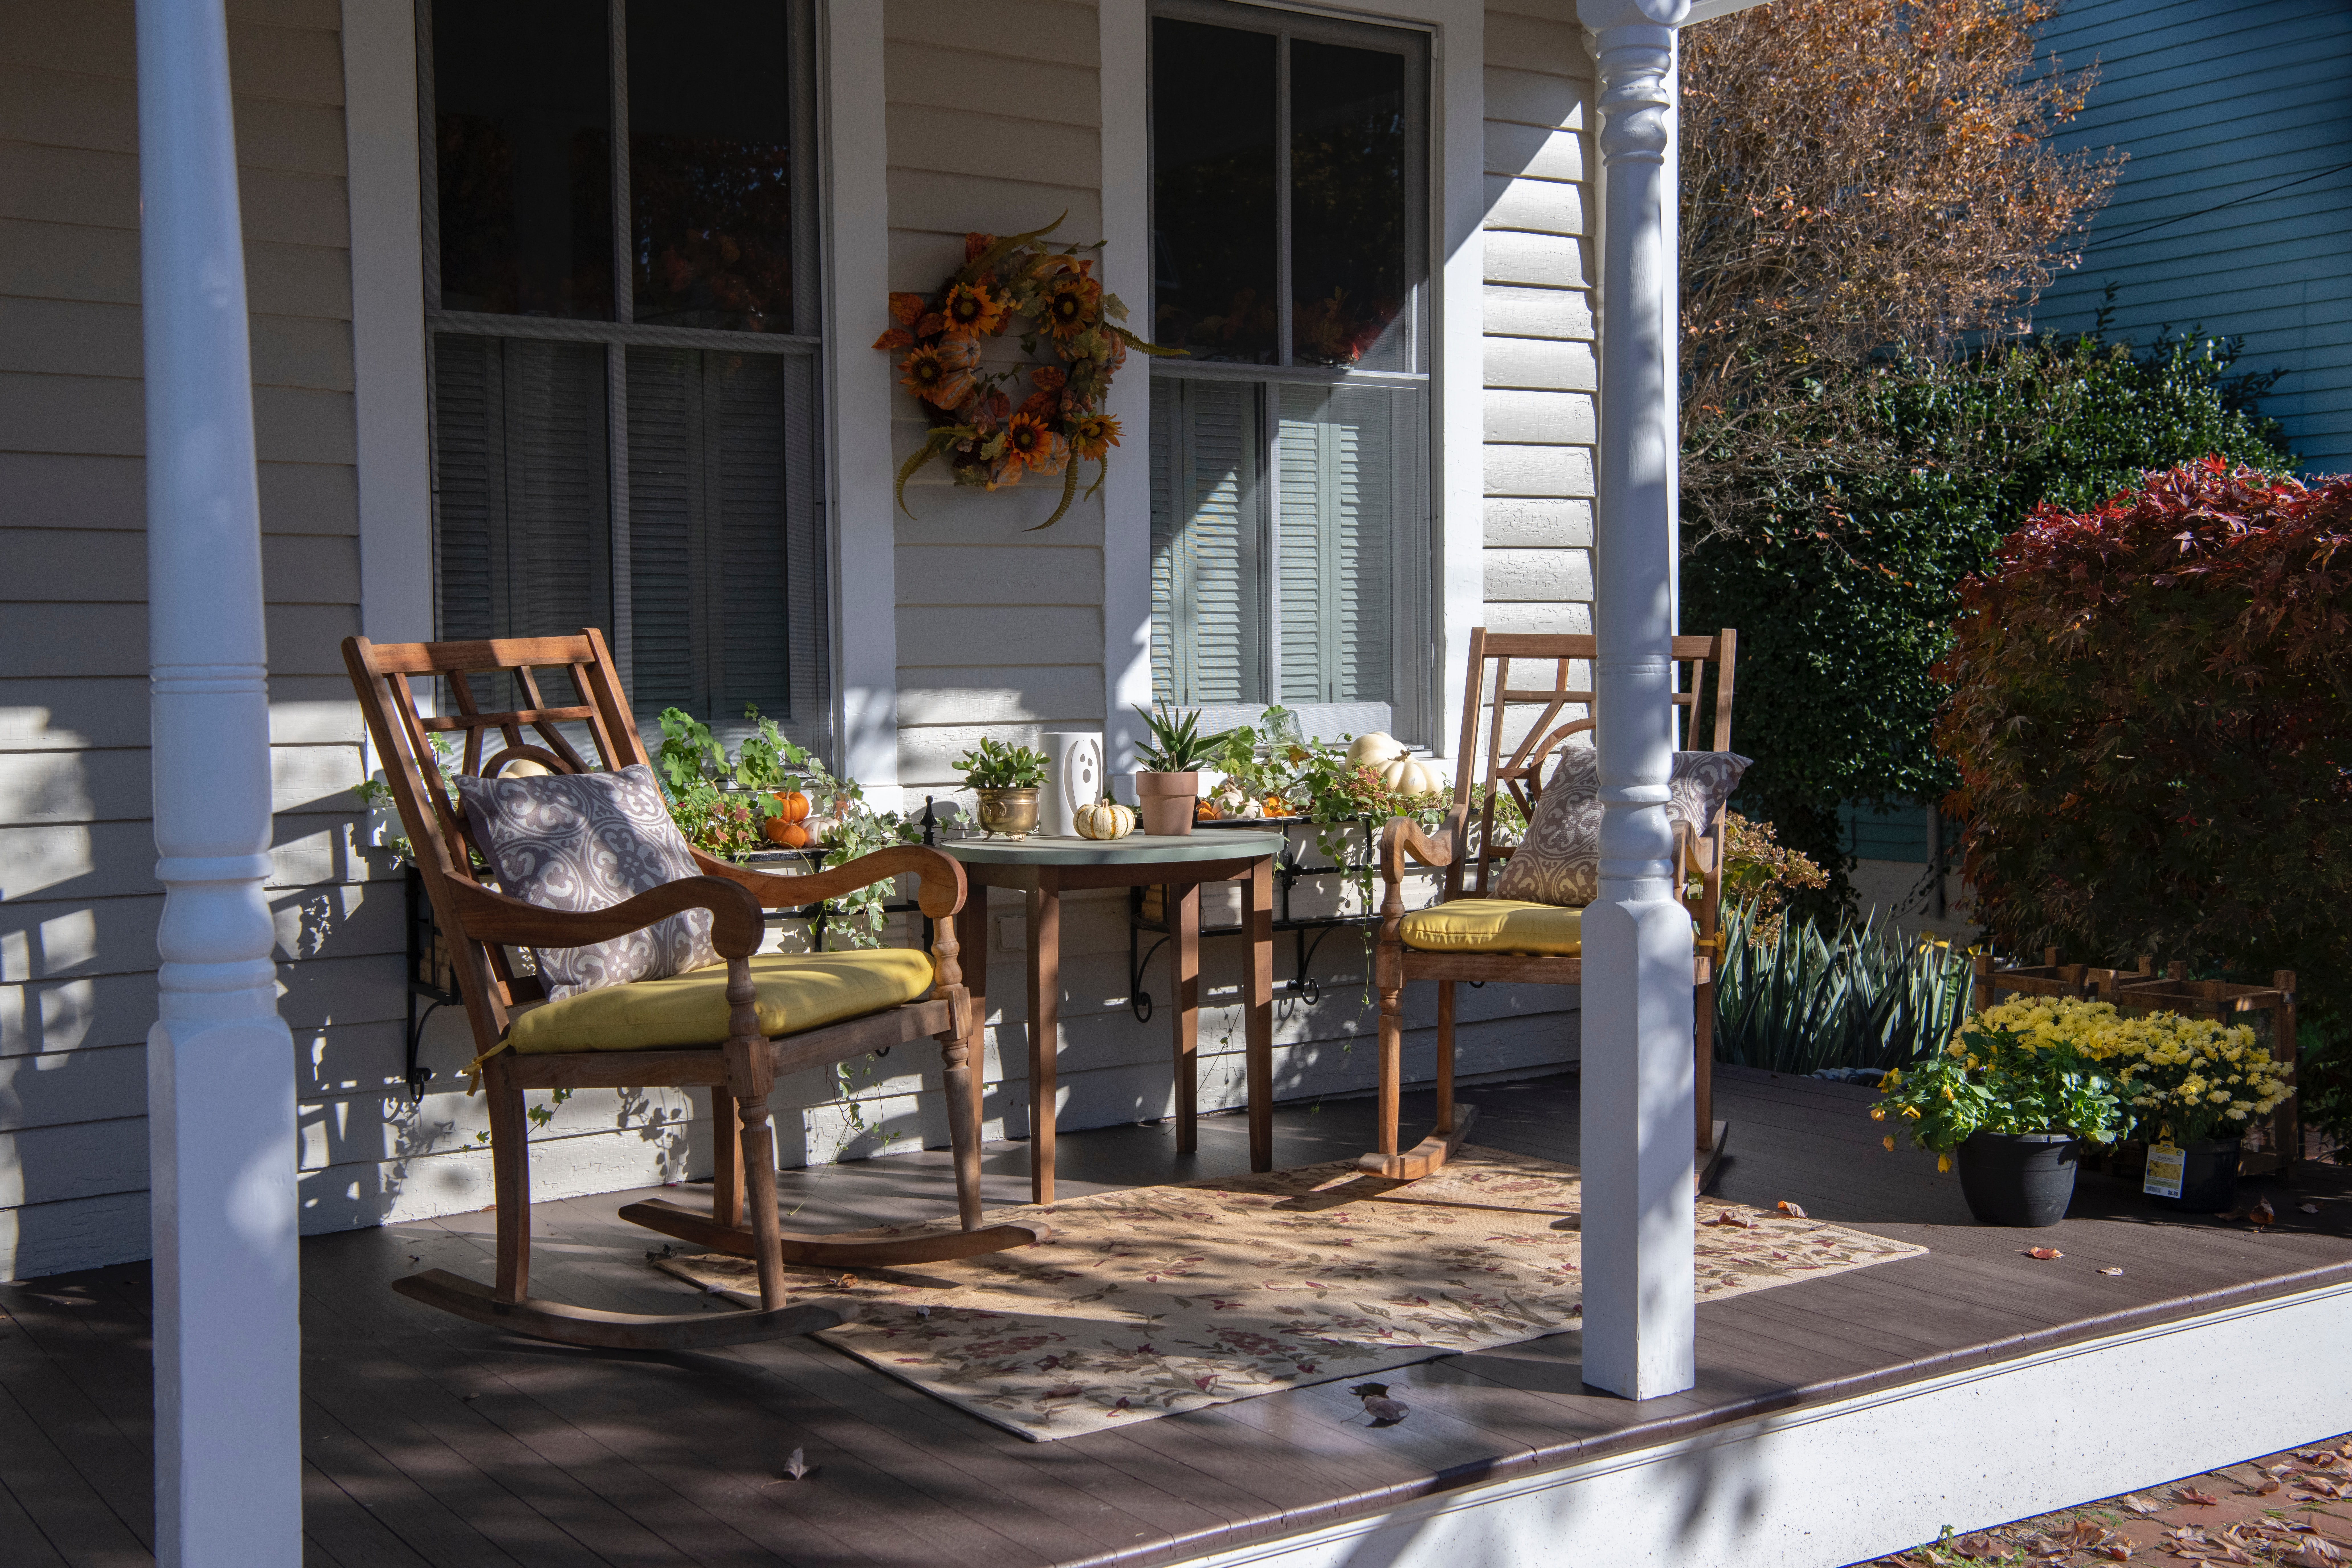 15 Porch Decor Ideas to Inspire You